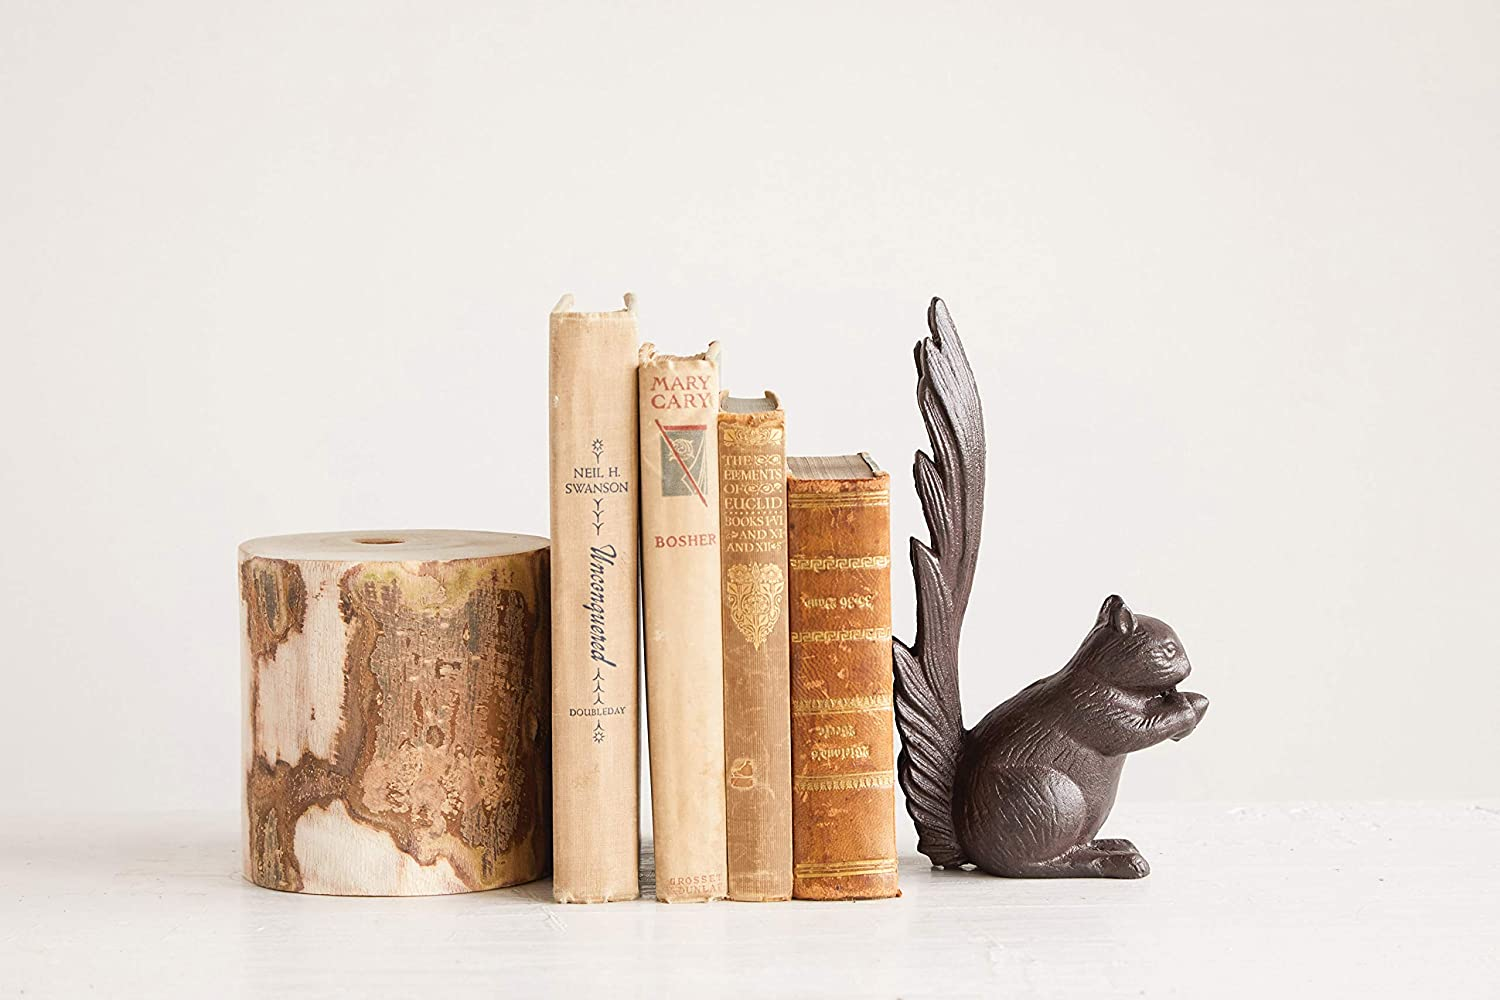 Bookend Creative Co-Op DA8308 Cast Iron Squirrel Doorstop